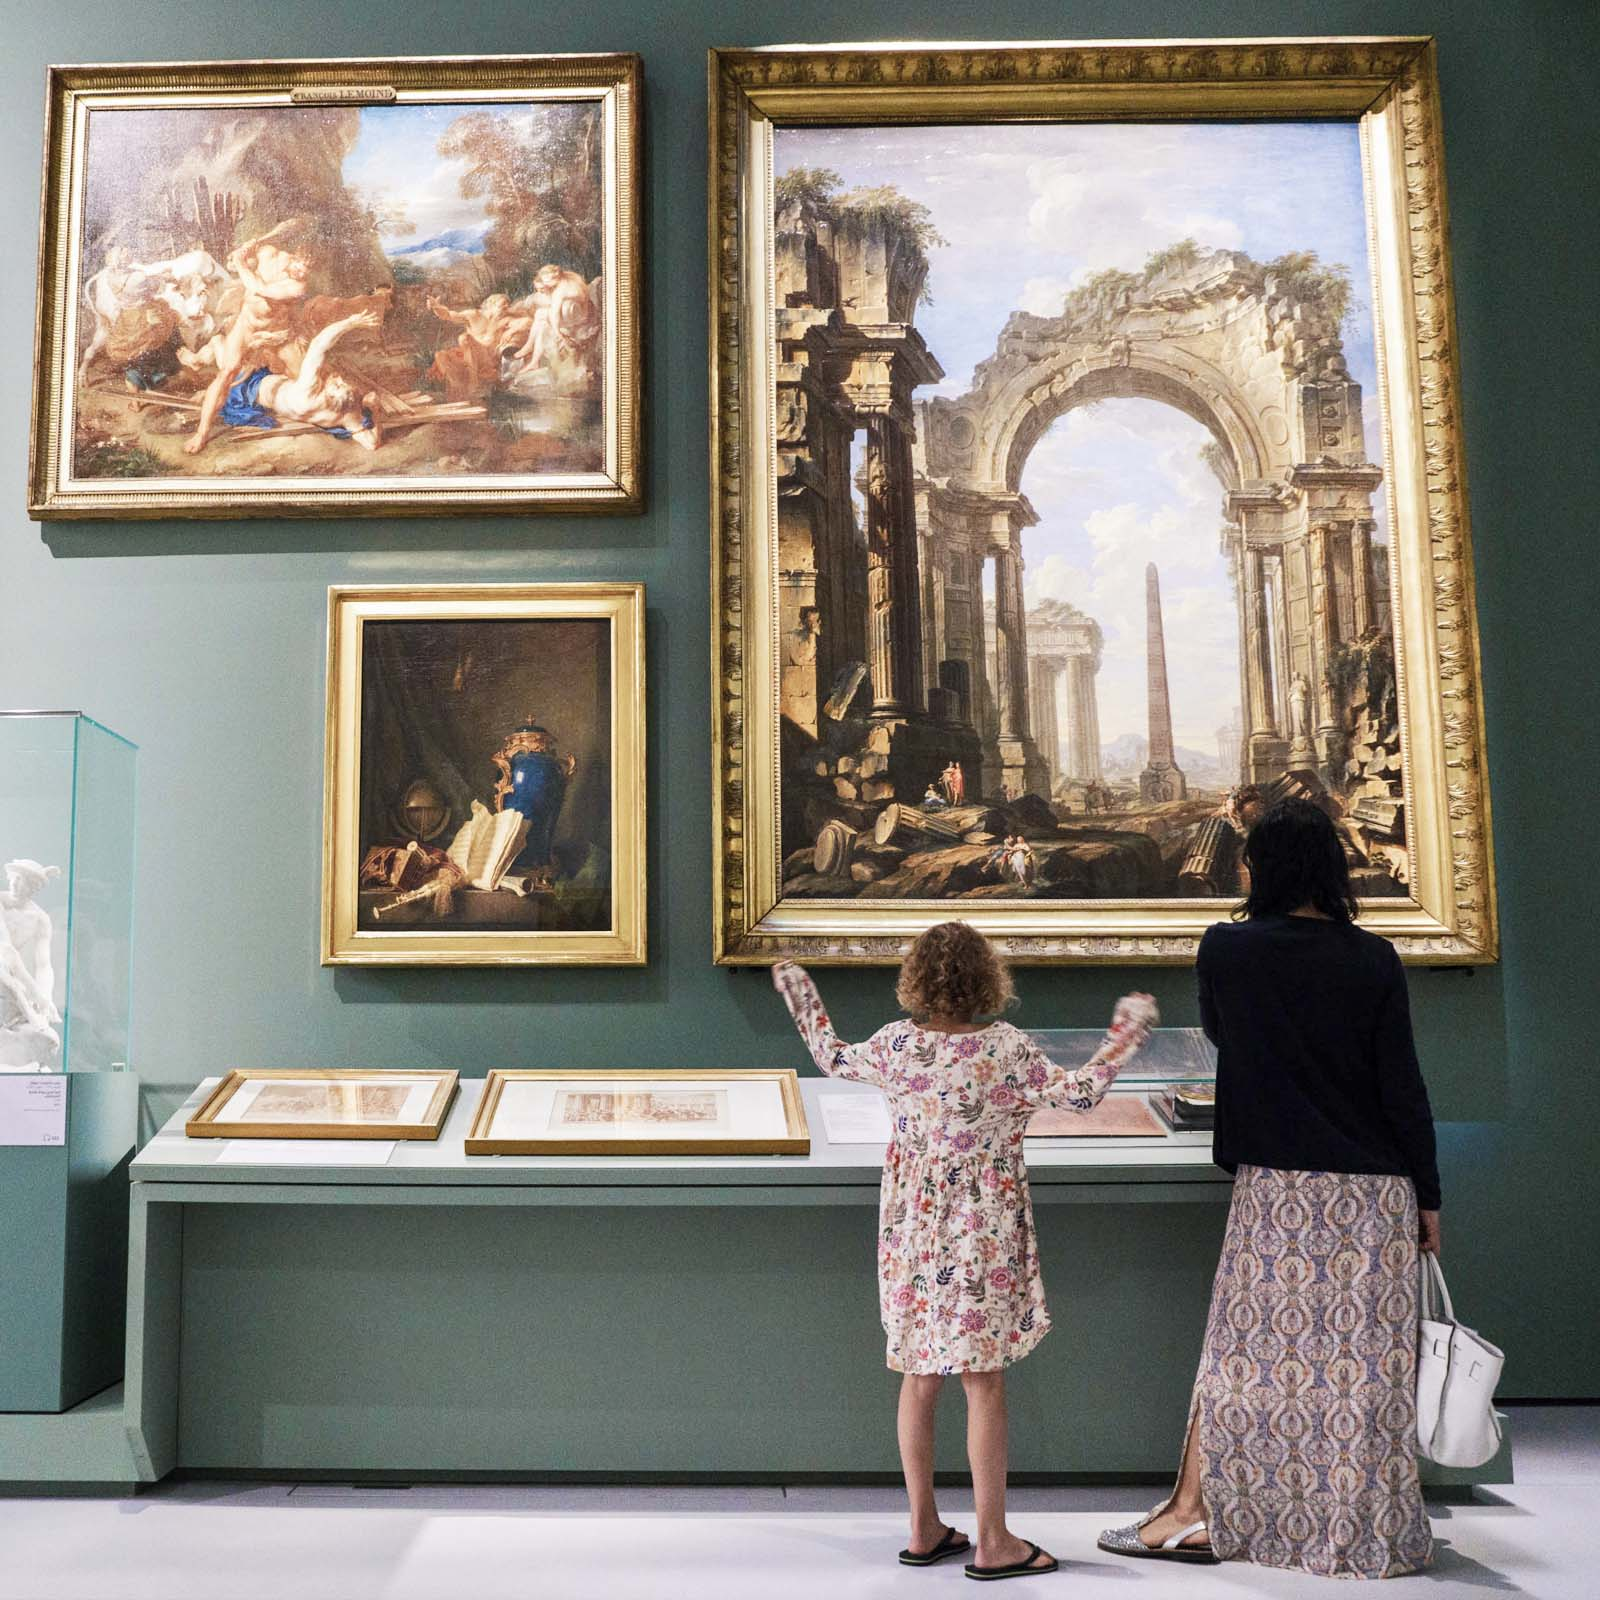 International exhibition From one Louvre to another in partnership with musée du Louvre